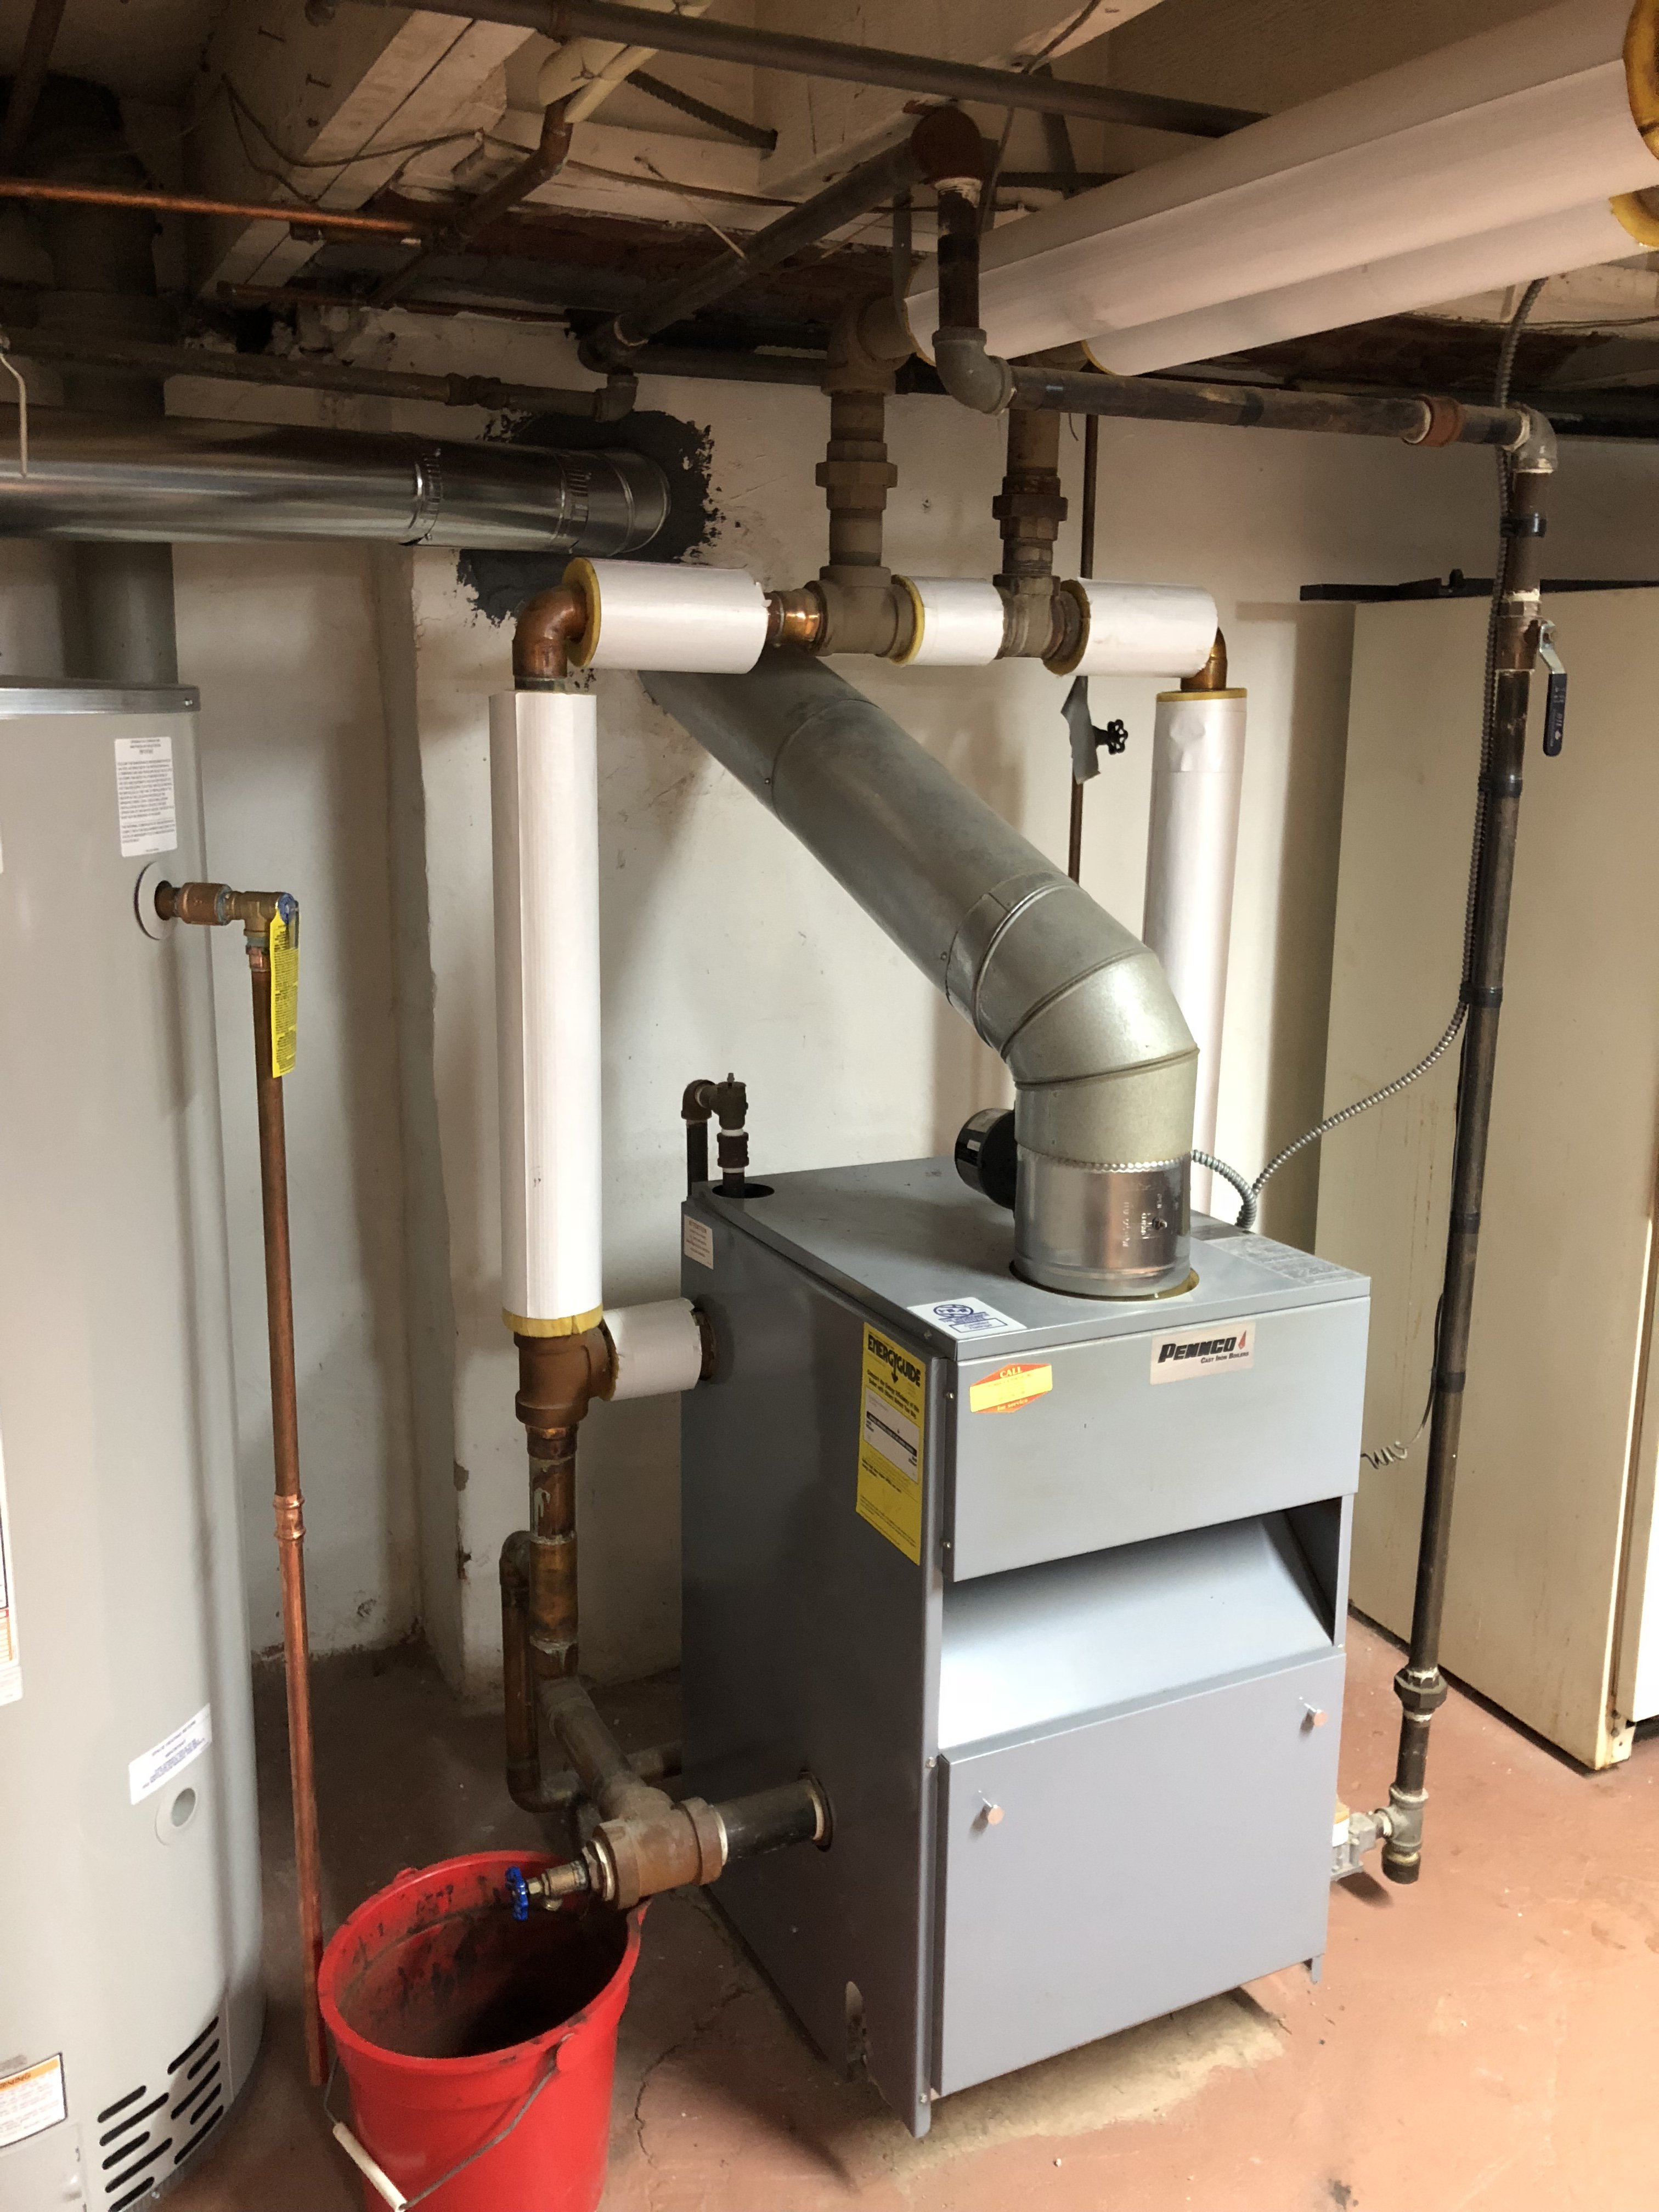 bnib storemeister miller n brand industrial boiler wfe business water and mcdonnell at hvac online feeder unimatch products find p